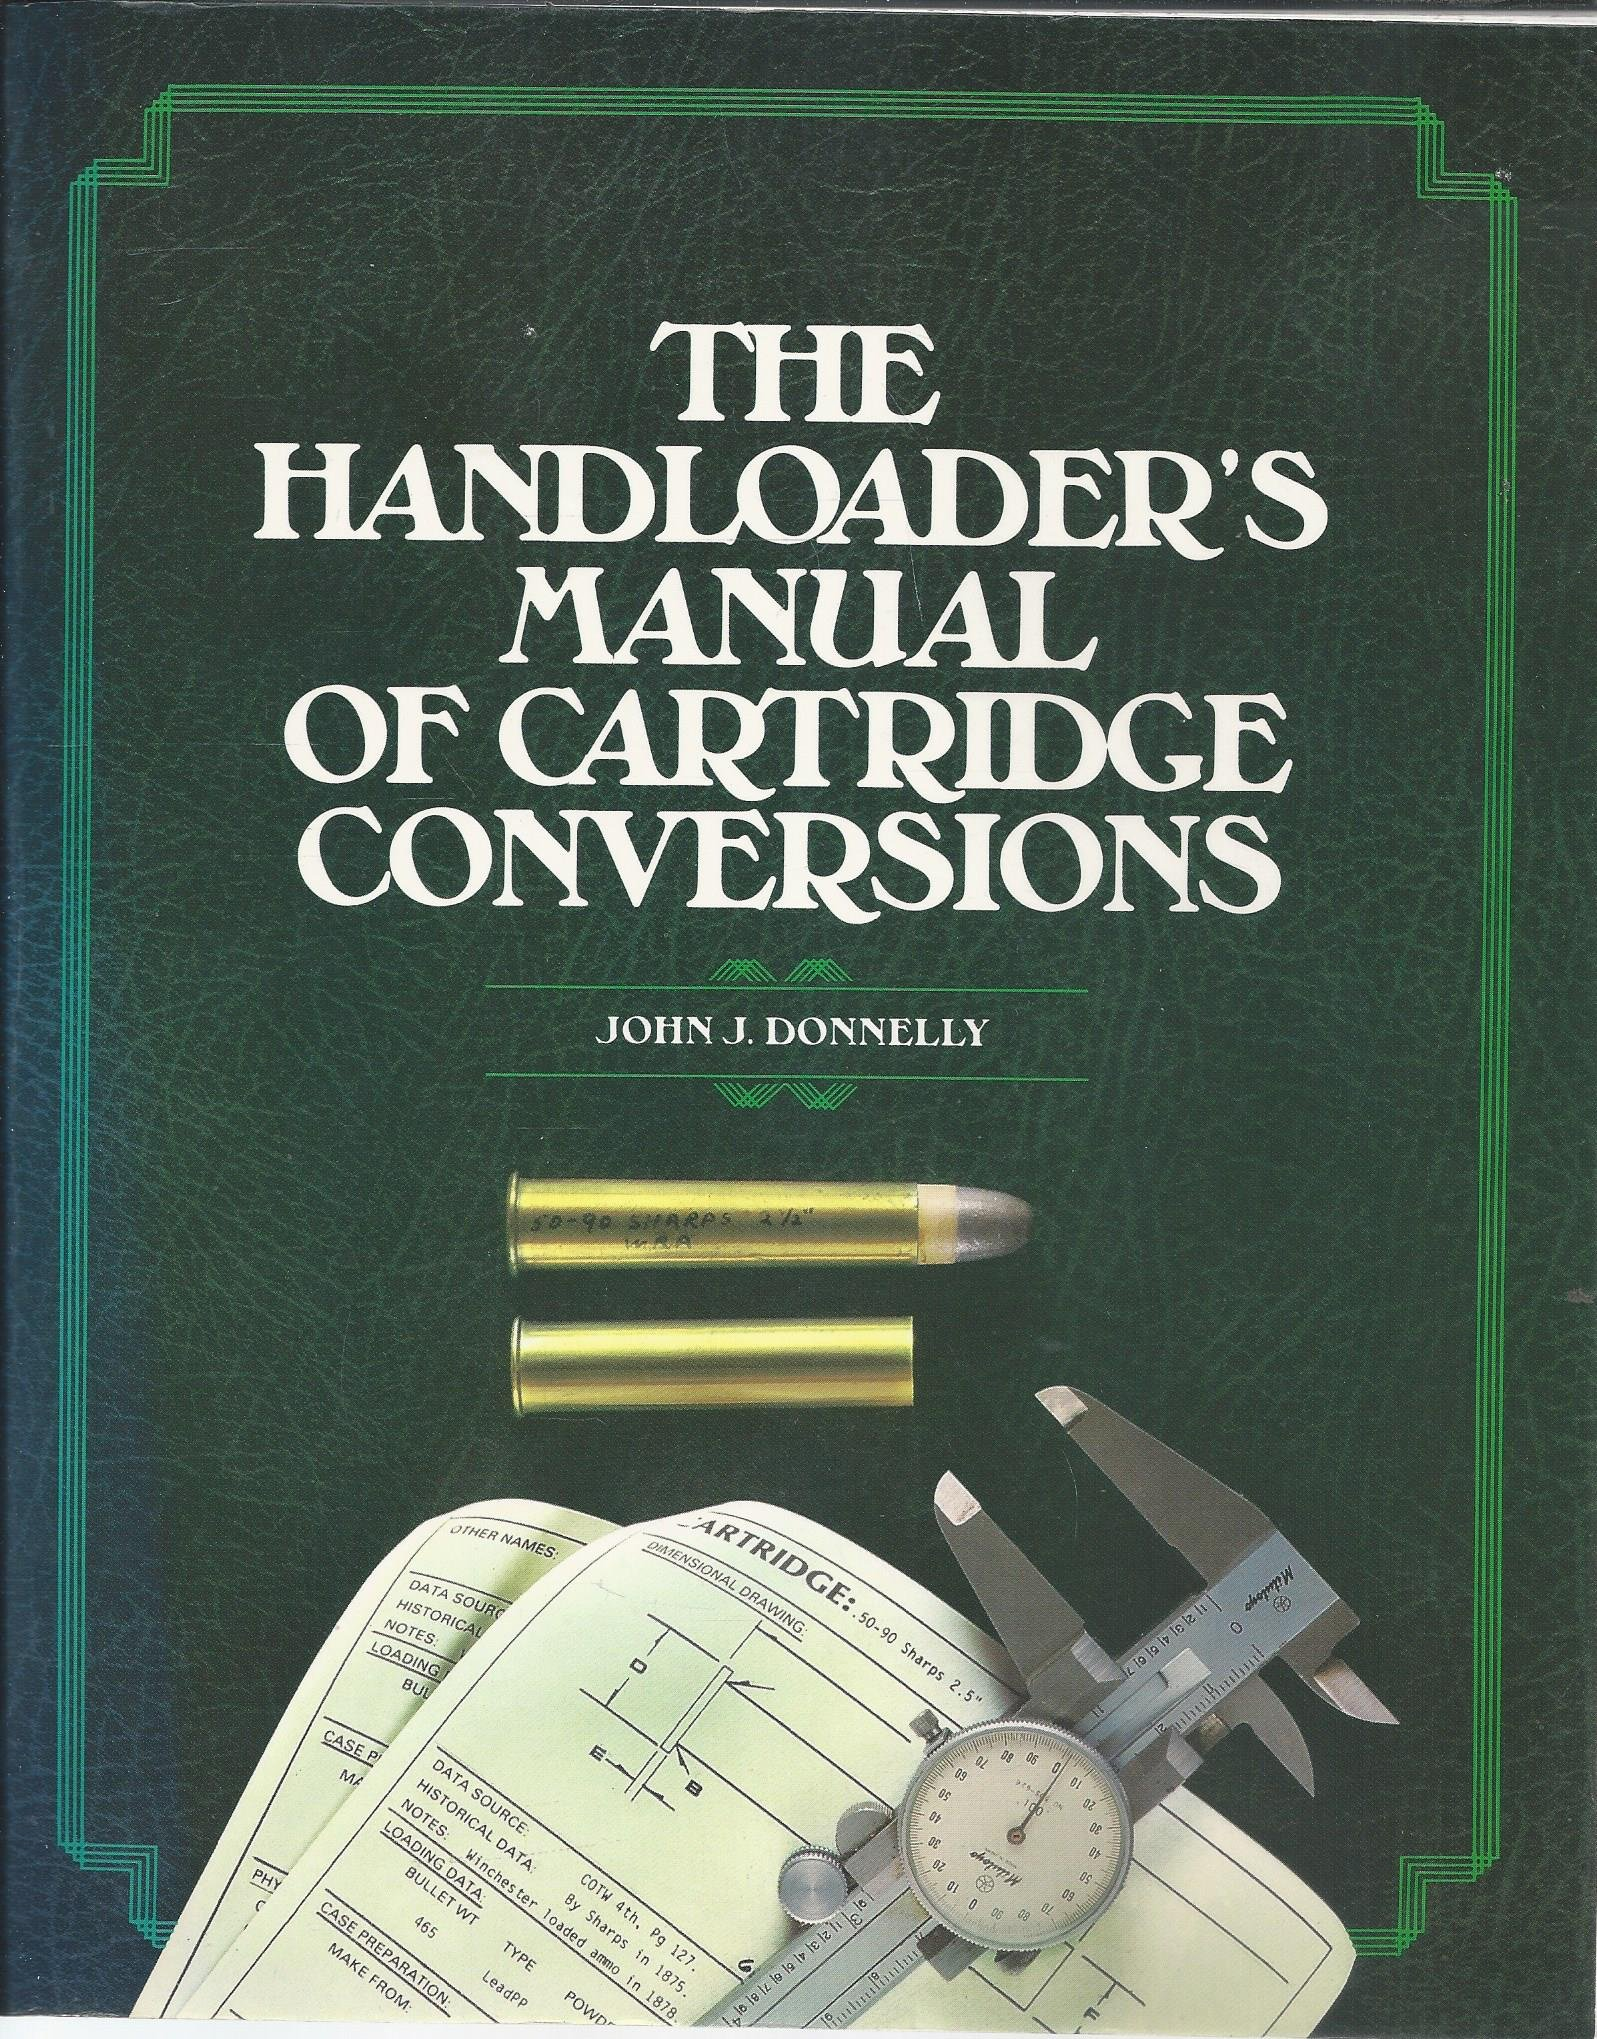 The Handloader's Manual of Cartridge Conversions: Amazon.co.uk: John J.  Donnelly: 9780883171363: Books